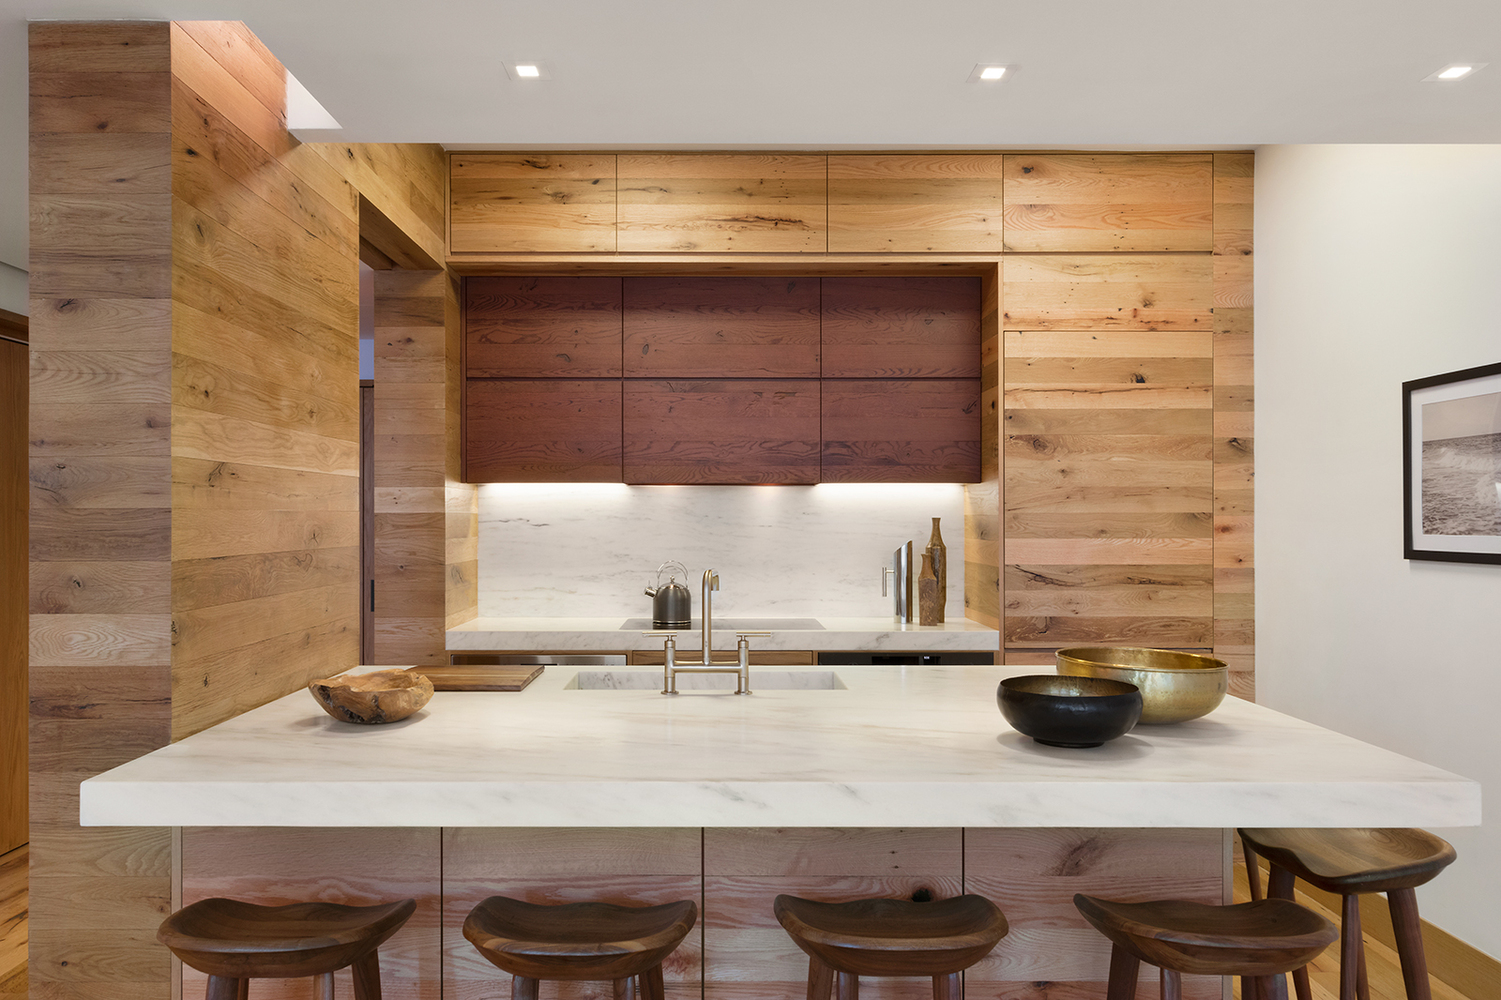 Wood paneled storage spaces in a rustic kitchen with marble counters and a teapot on the stove. MEP designed by 2L Engineering.